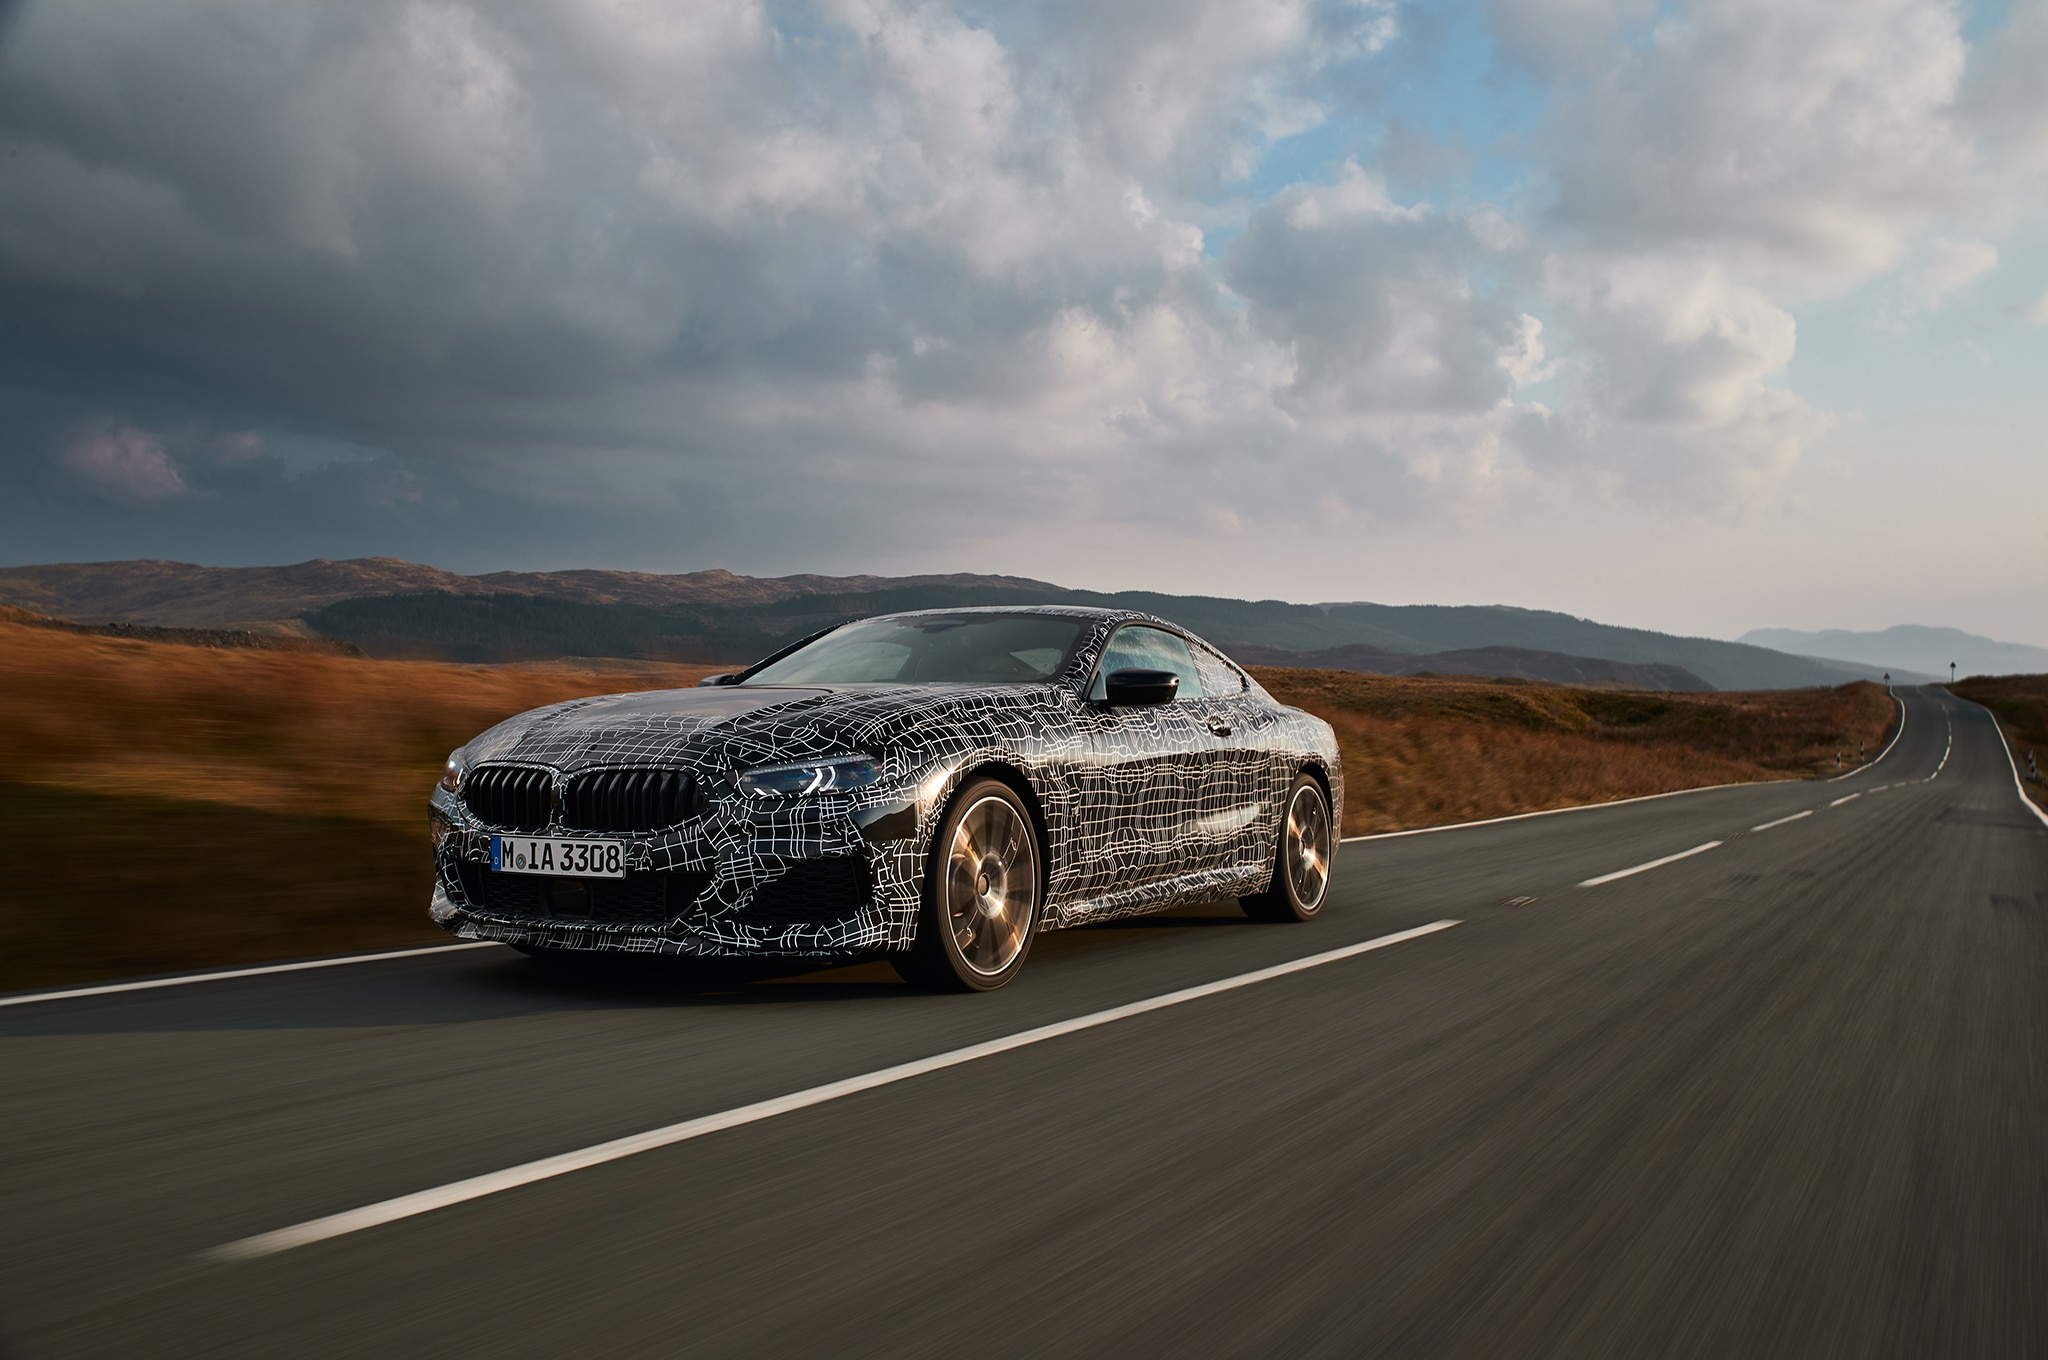 2019 BMW 850i xDrive Prototype Drive | Automobile Magazine